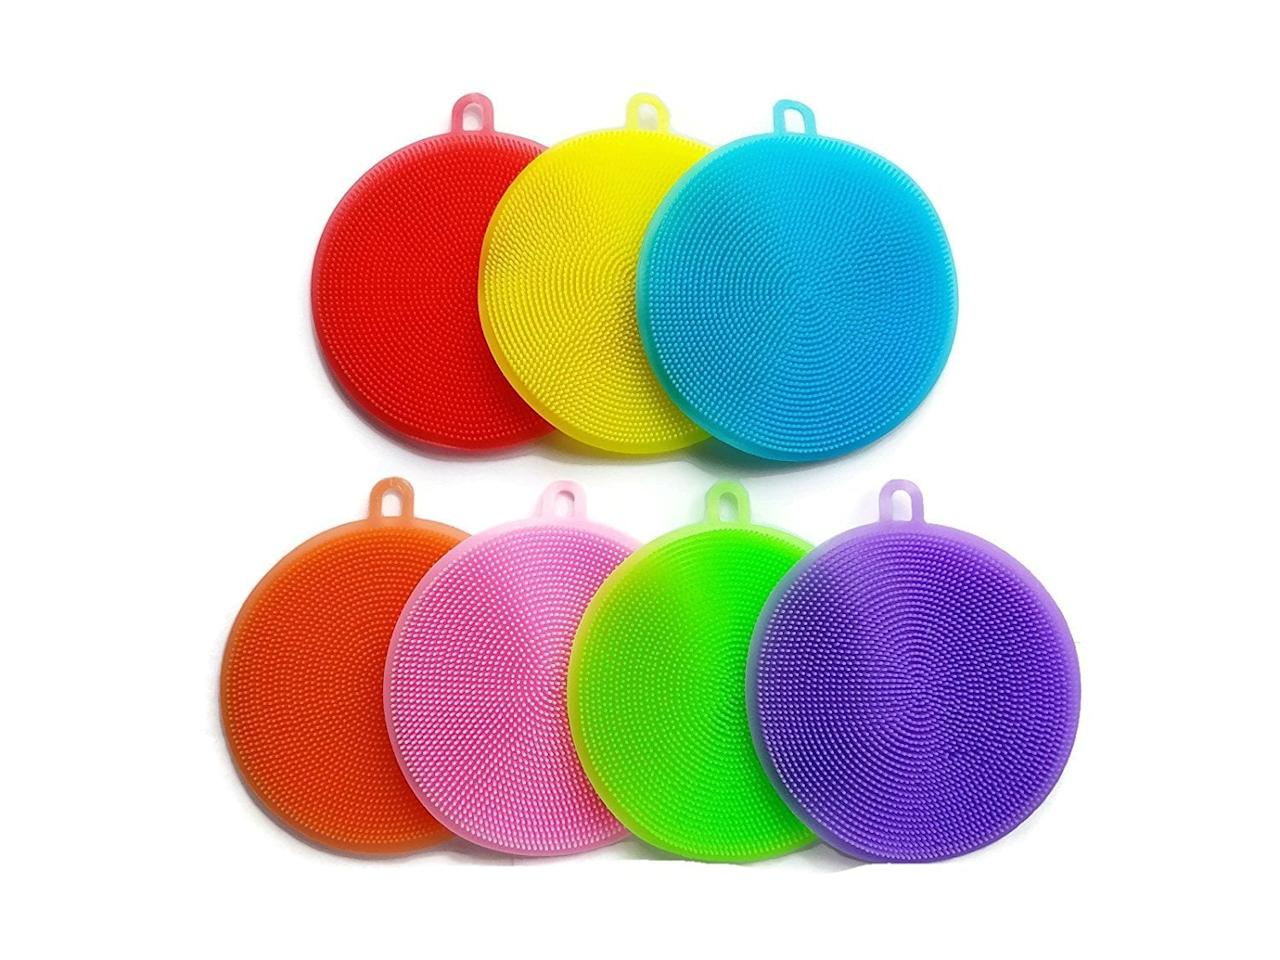 """<p>Traditional sponges can be filled with dirt and bacteria, so try washing your dishes with this <product href=""""https://www.amazon.com/Silicone-Food-Grade-Antibacterial-Multipurpose-Antimicrobial/dp/B07KV7FHC6/ref=sr_1_37?s=home-garden&amp;ie=UTF8&amp;qid=1546630876&amp;sr=1-37&amp;keywords=best+kitchen+gadgets"""" target=""""_blank"""" class=""""ga-track"""" data-ga-category=""""Related"""" data-ga-label=""""https://www.amazon.com/Silicone-Food-Grade-Antibacterial-Multipurpose-Antimicrobial/dp/B07KV7FHC6/ref=sr_1_37?s=home-garden&amp;ie=UTF8&amp;qid=1546630876&amp;sr=1-37&amp;keywords=best+kitchen+gadgets"""" data-ga-action=""""In-Line Links"""">Silicone Sponge Dish Antibacterial Washing Brush</product> ($12).</p>"""